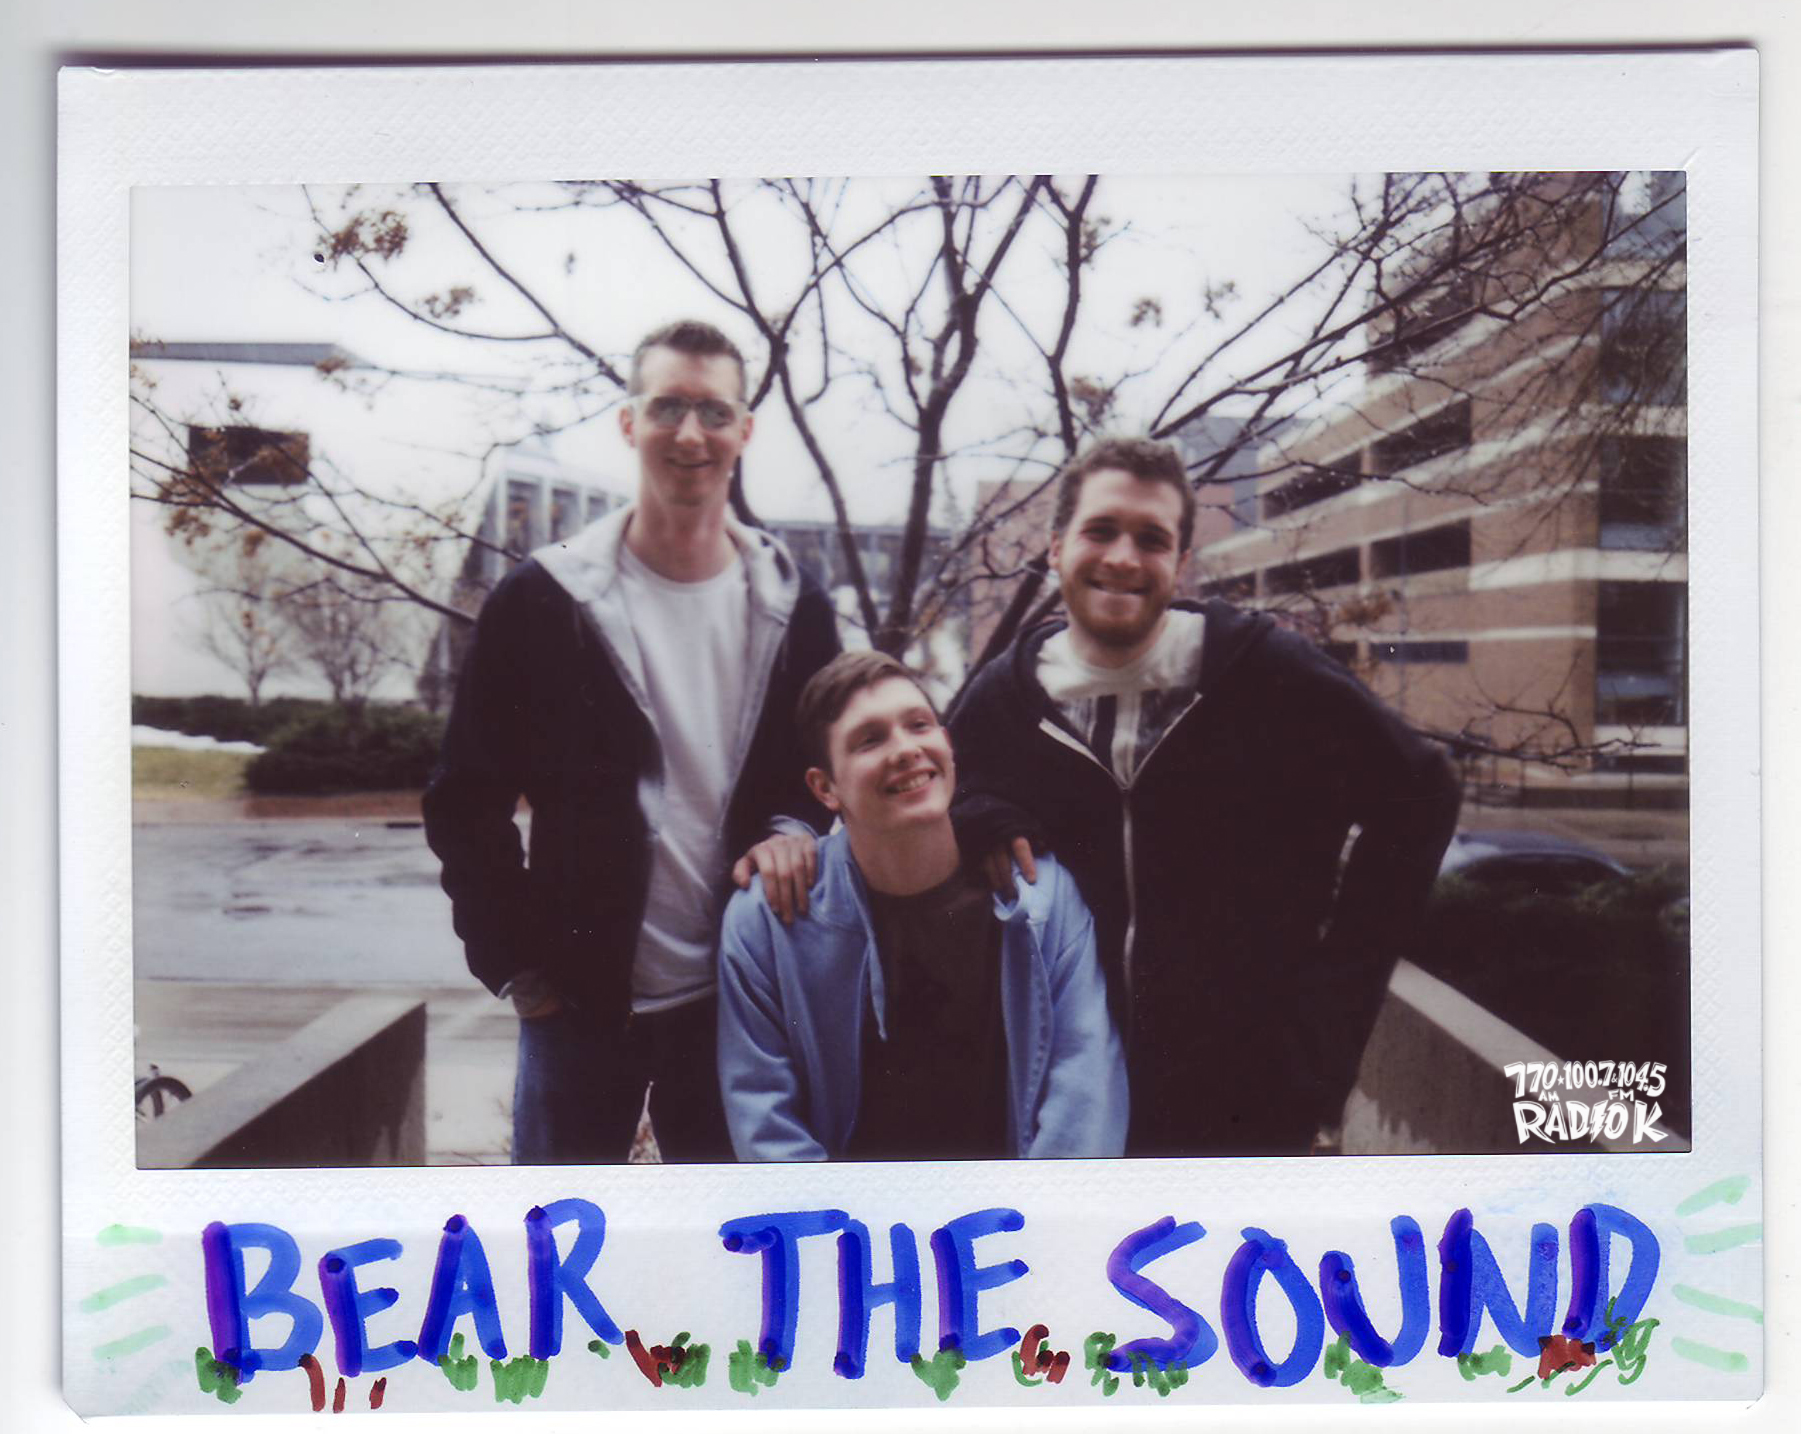 BEAR THE SOUND Radio K in-studio polaroid